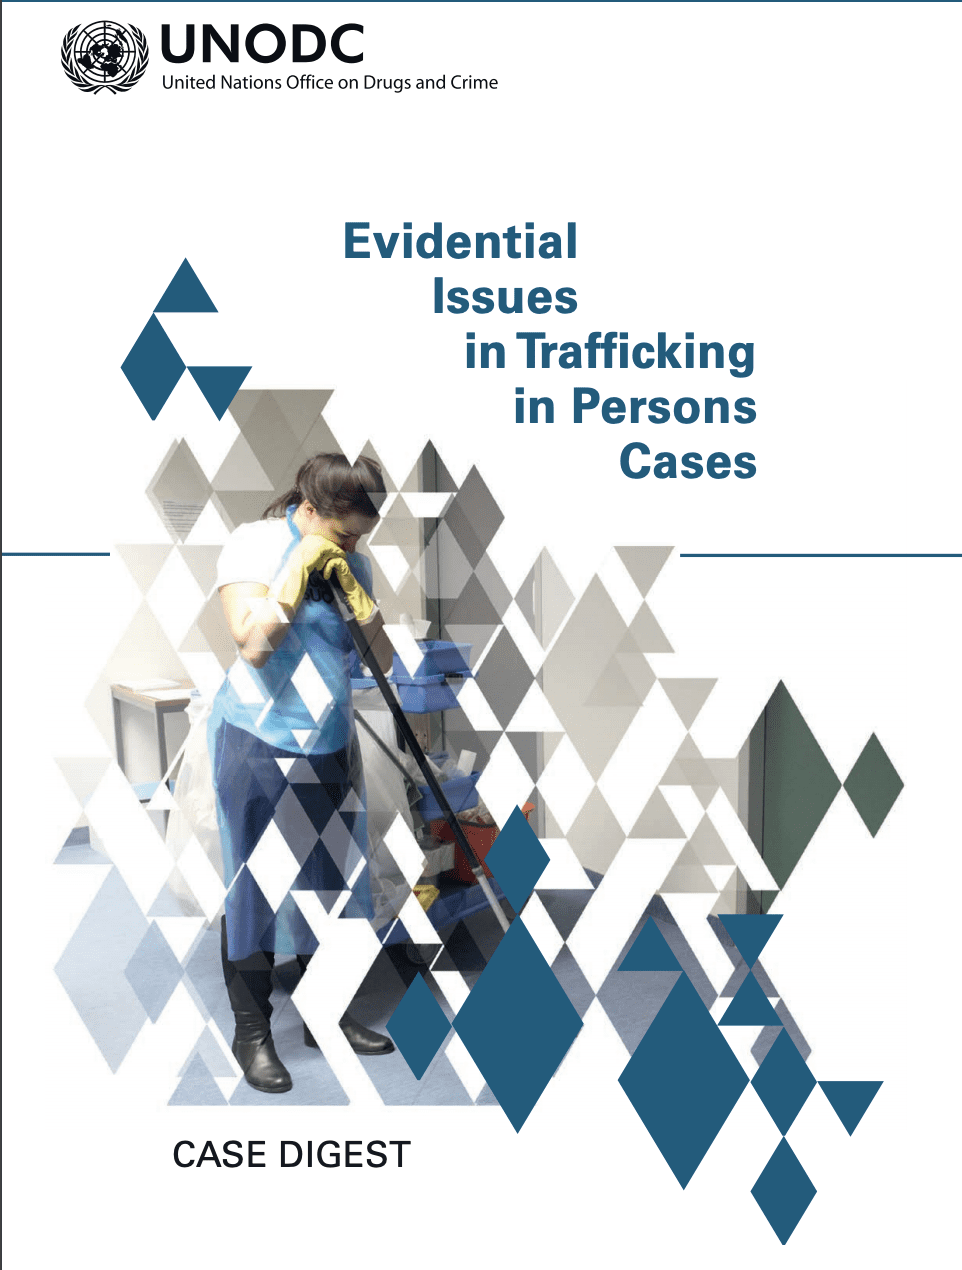 Evidential Issues in Trafficking in Persons Cases